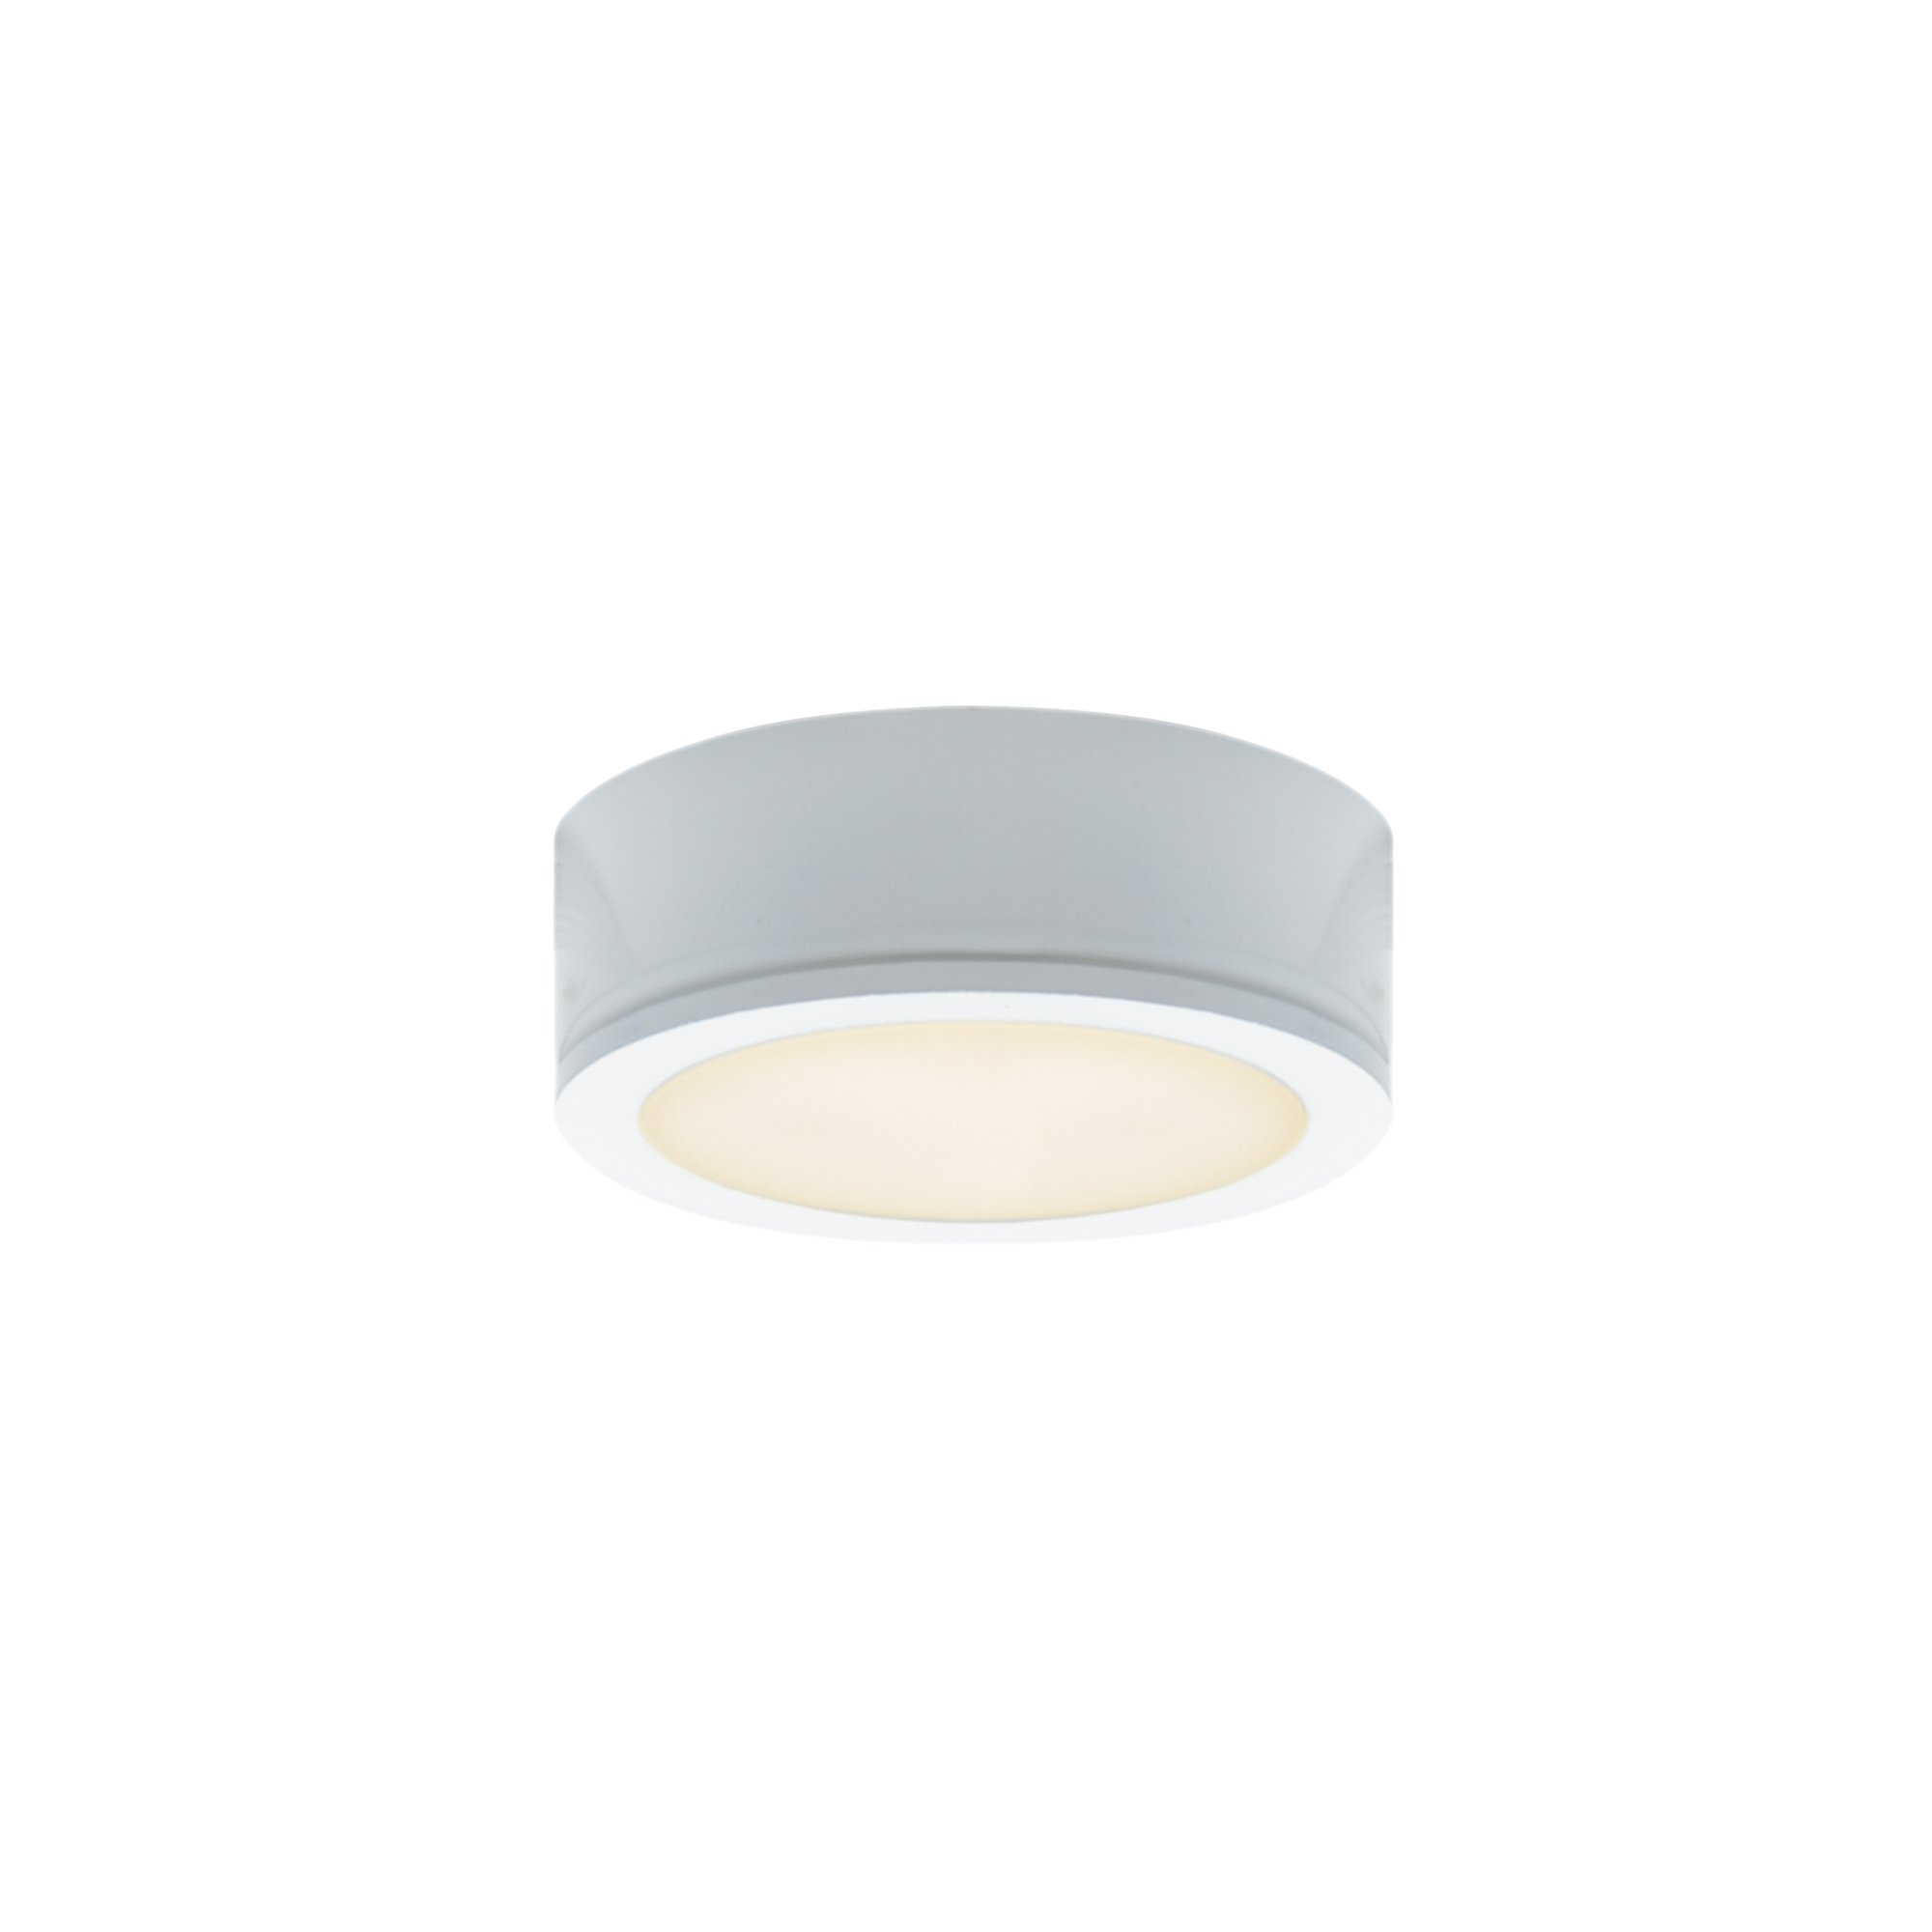 DALS Lighting 6001-WH 2.75'' Power LED Under Cabinet Puck Light, White